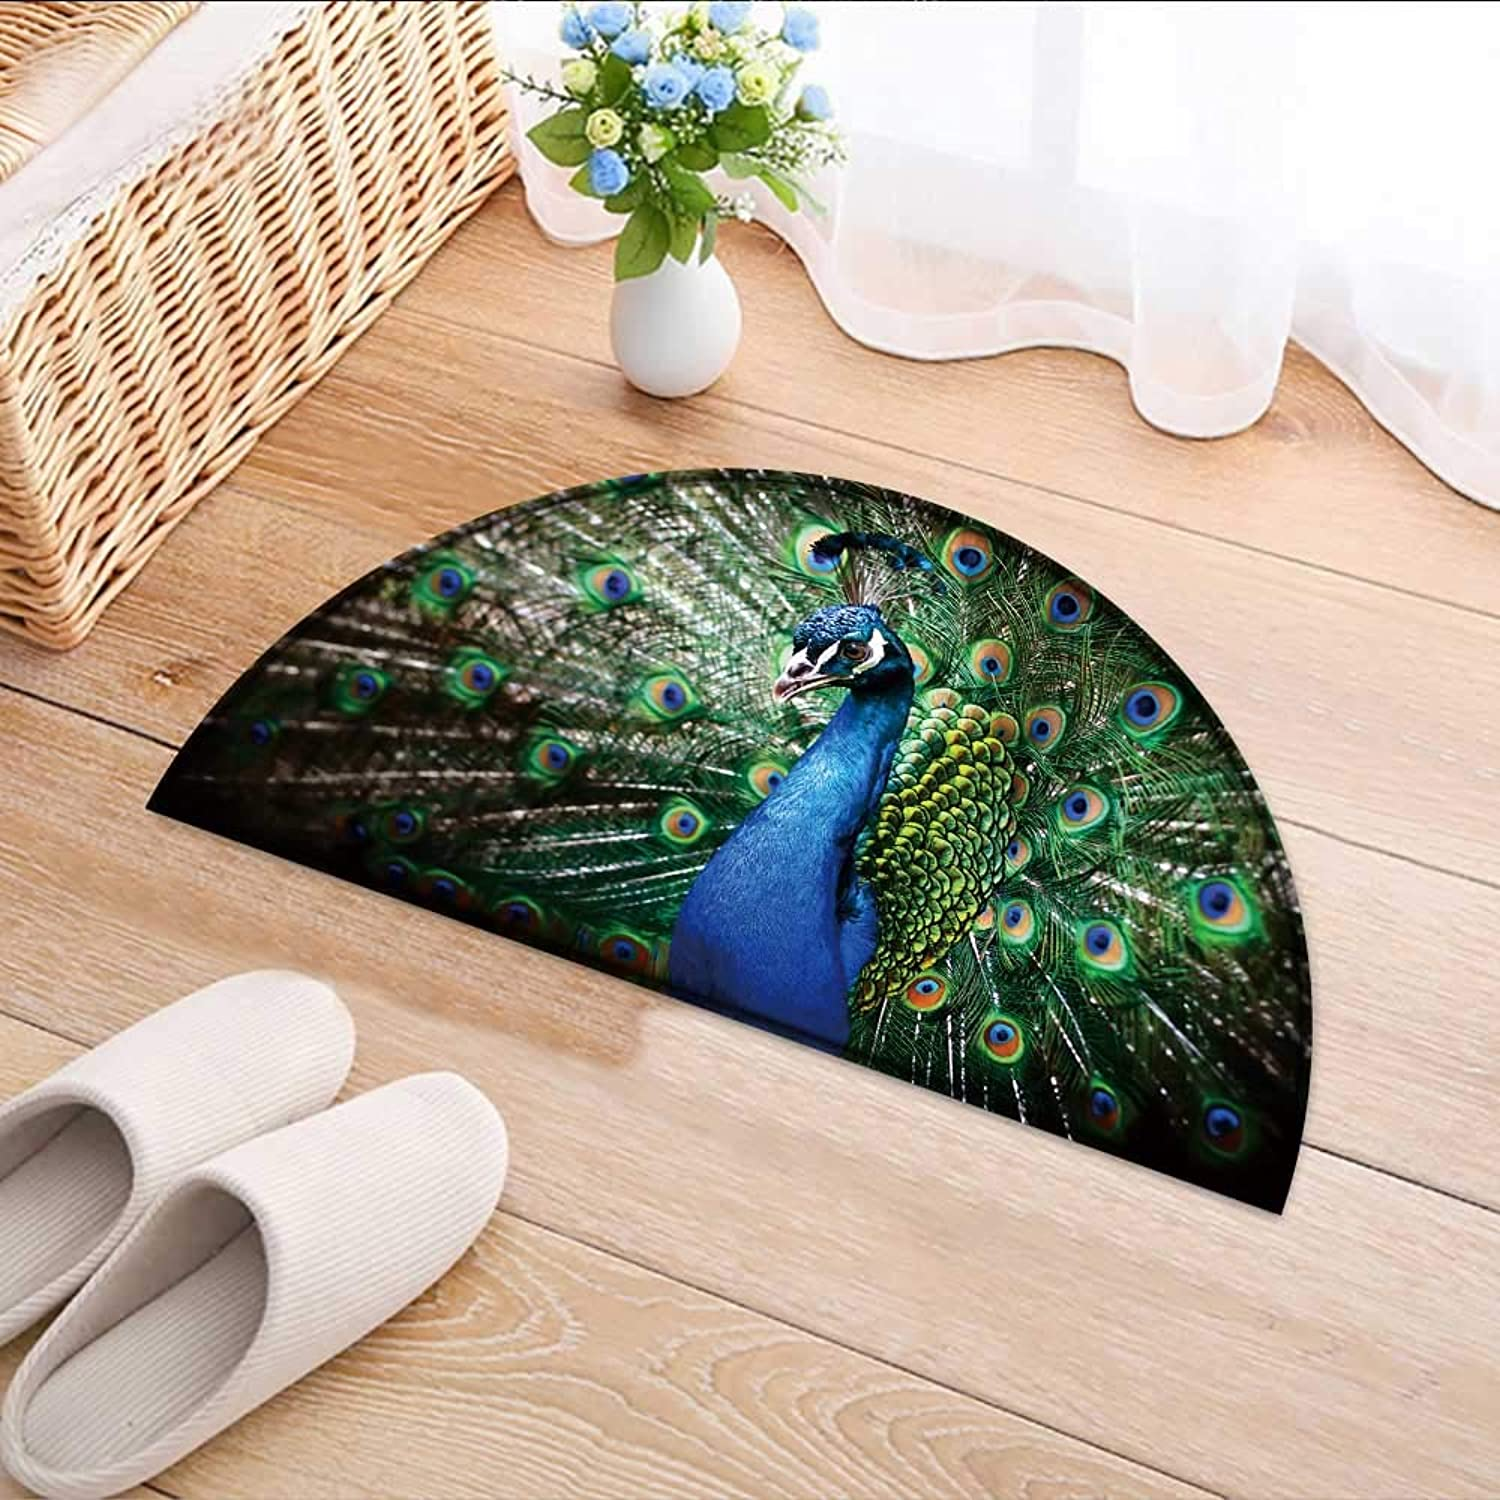 Semicircle Rug Kid Carpet Portrait of Peacock with Feathers Out Home Decor Foor Carpe W59 x H35 INCH